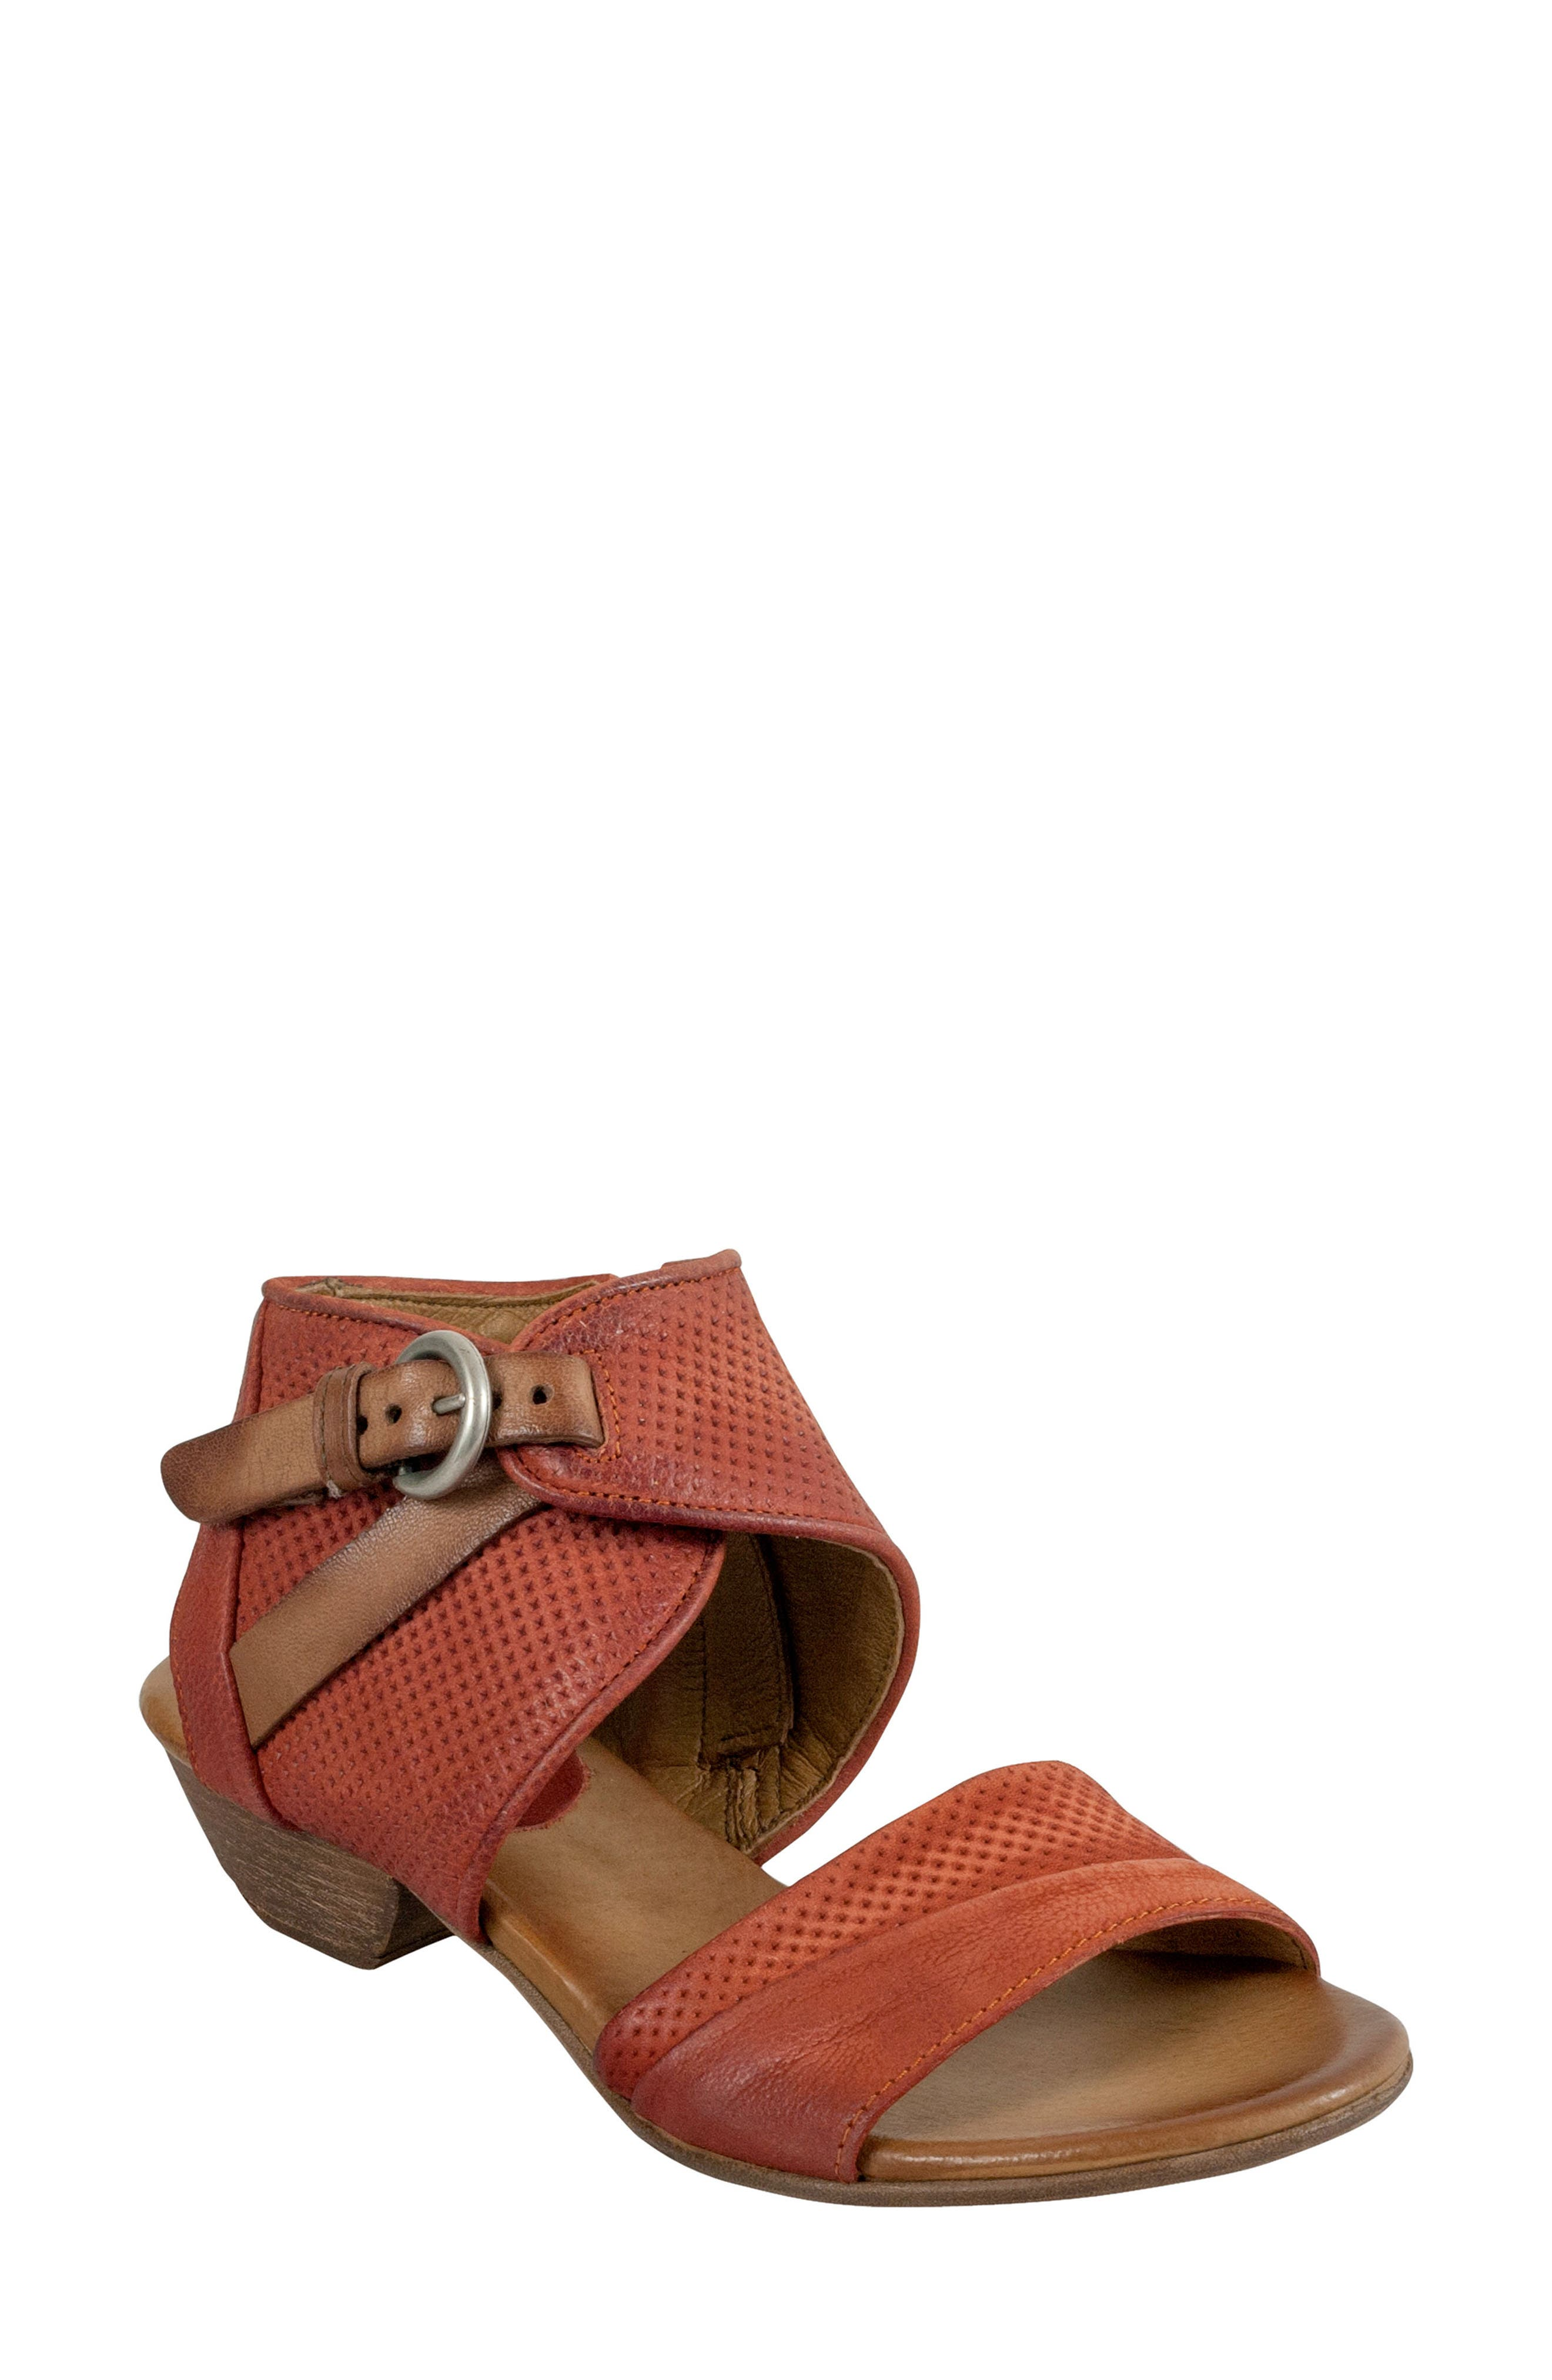 Chatham Textured Sandal,                             Main thumbnail 1, color,                             Rust Leather